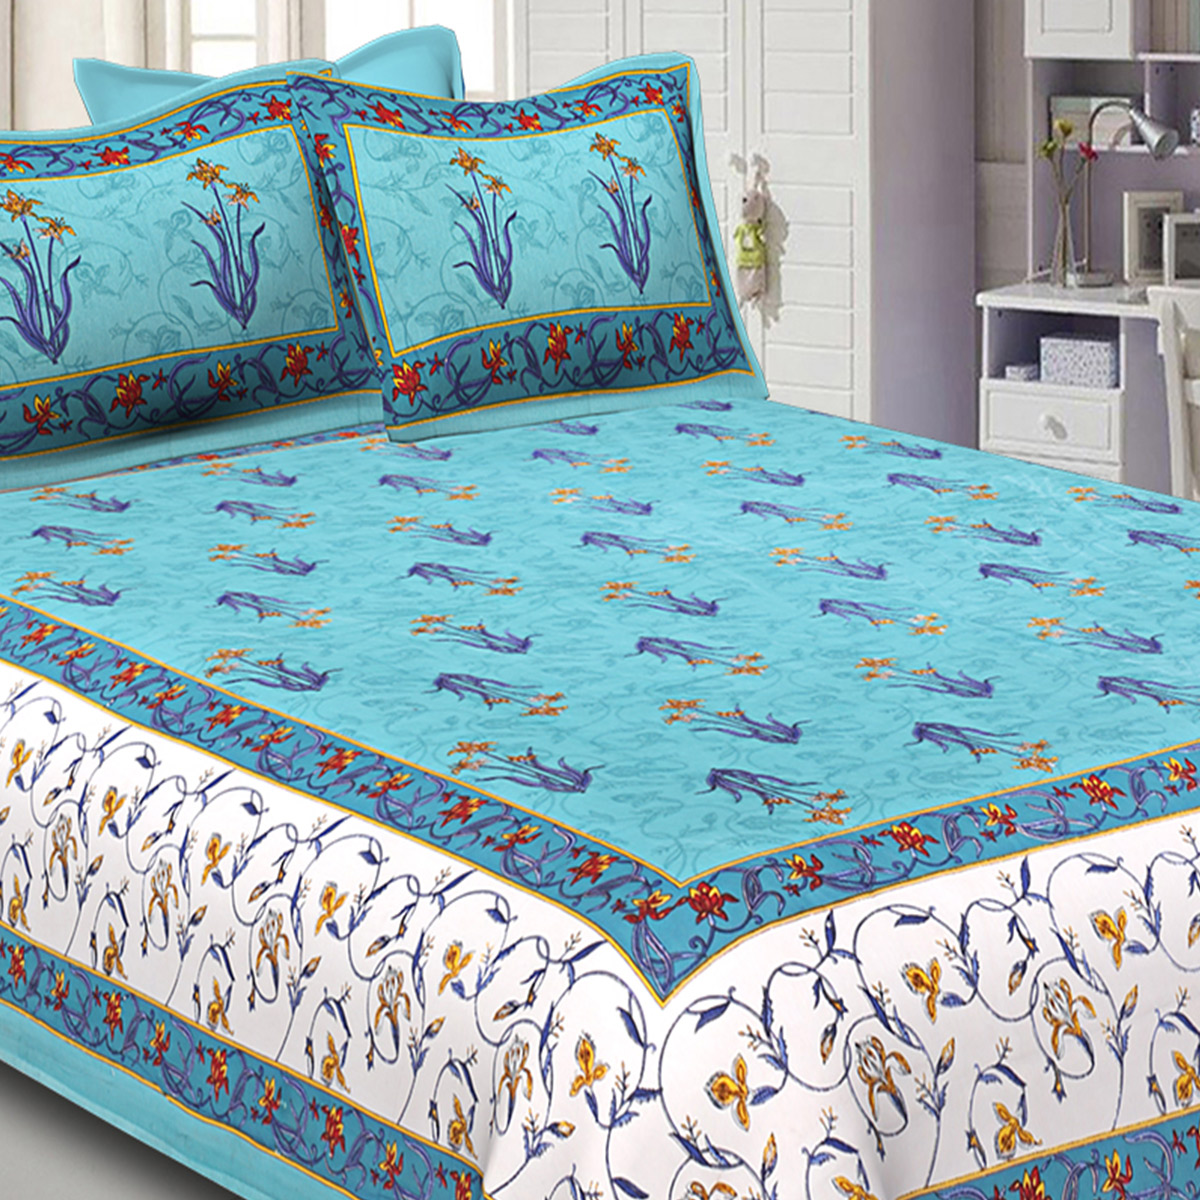 Sea Green-Cream Colored Small Mughal Print Cotton Double Bed Sheet With 2 Pillow Cover